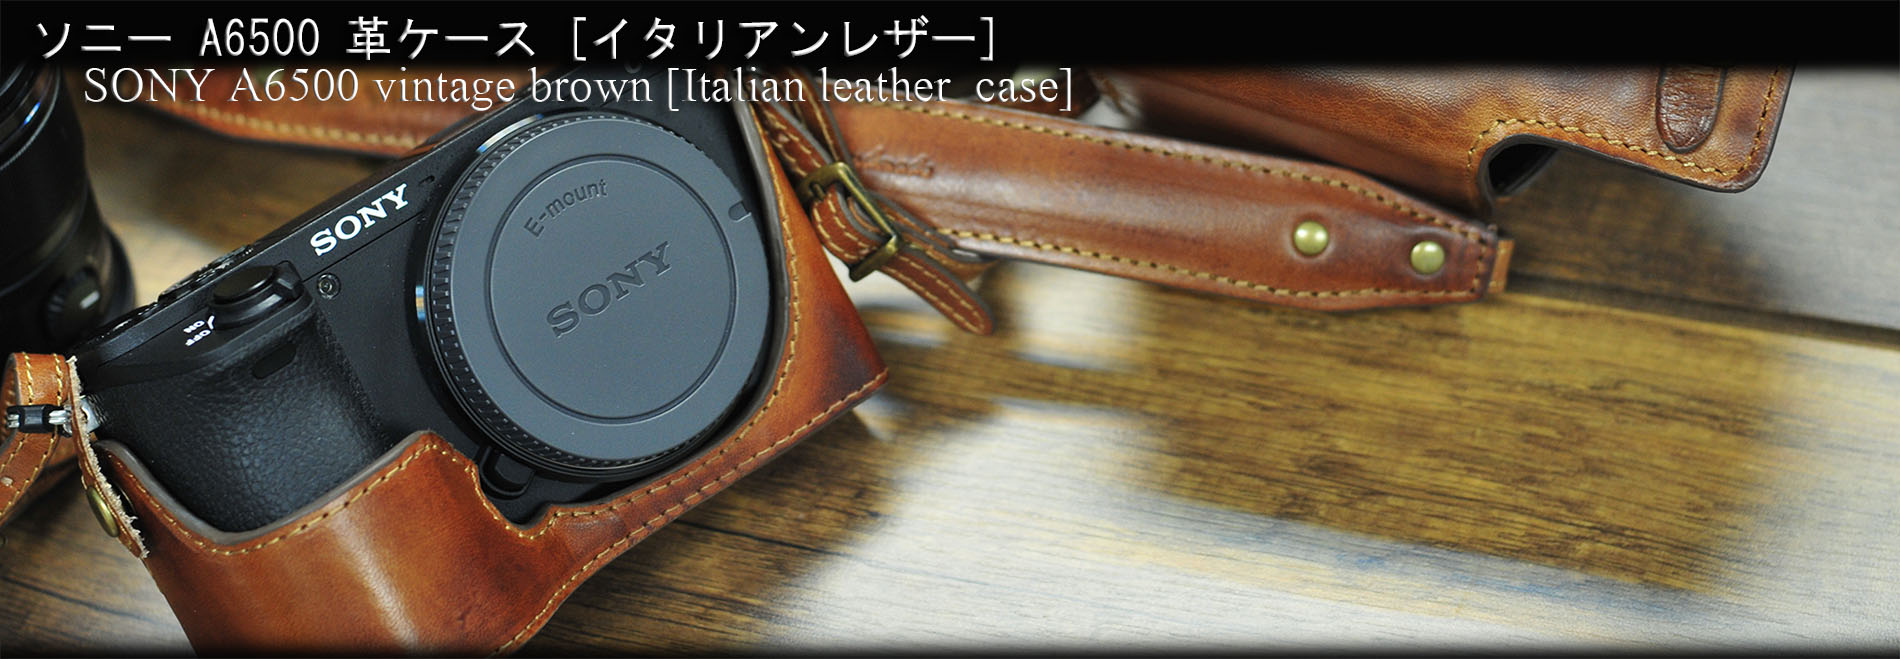 SONY A6500 相機皮套 Leather half case / case set ソニー A6500 用カメラケース by KAZA